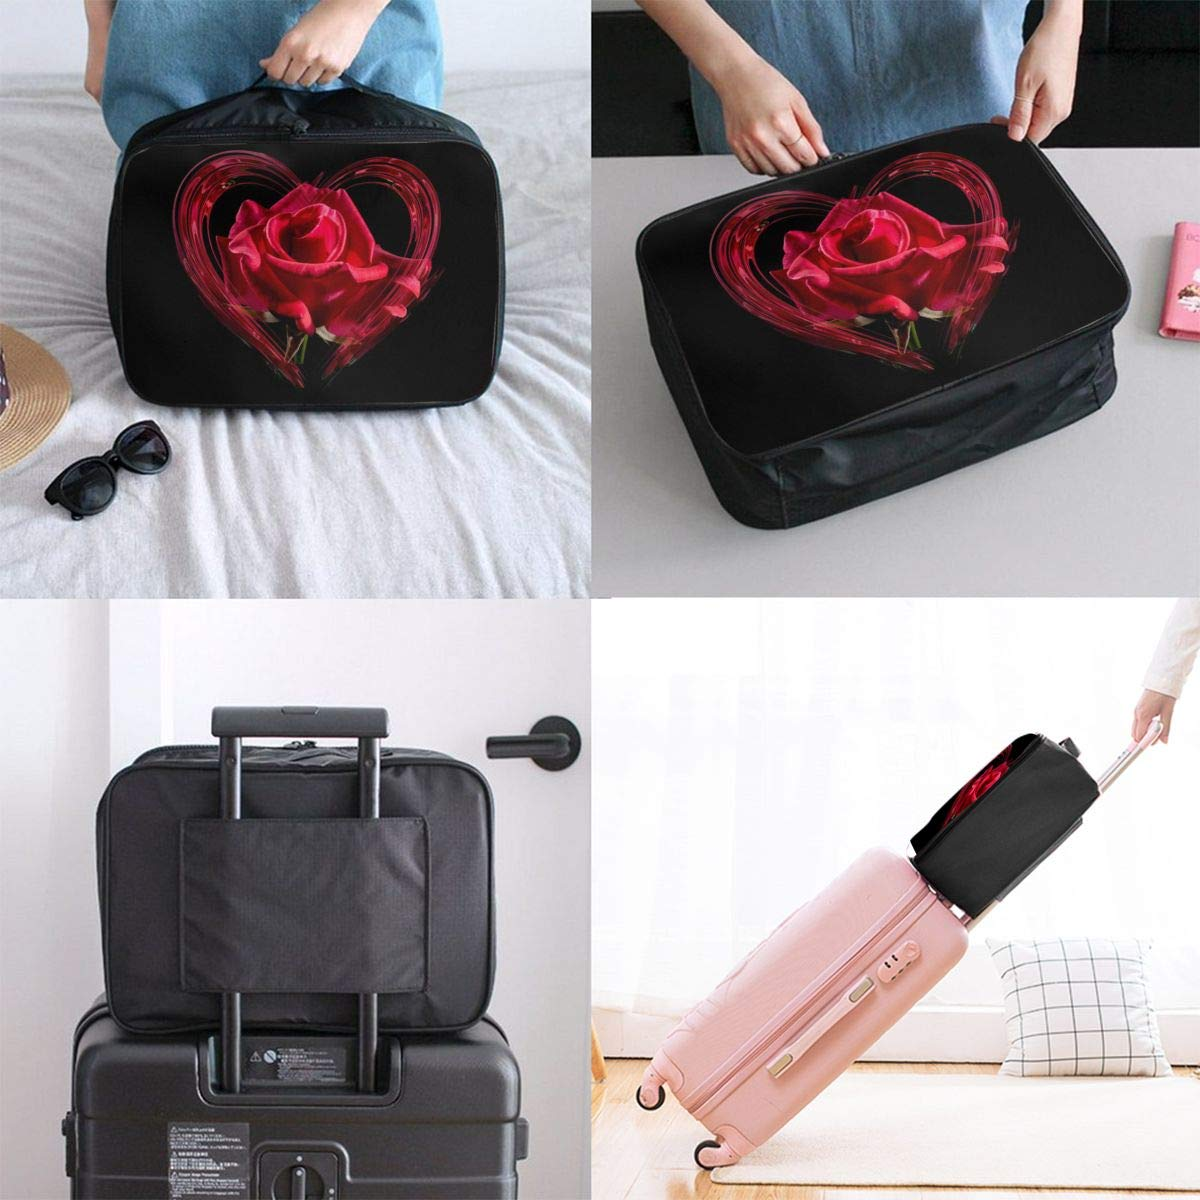 Heart Love Romance Rose Travel Lightweight Waterproof Foldable Storage Carry Luggage Large Capacity Portable Luggage Bag Duffel Bag